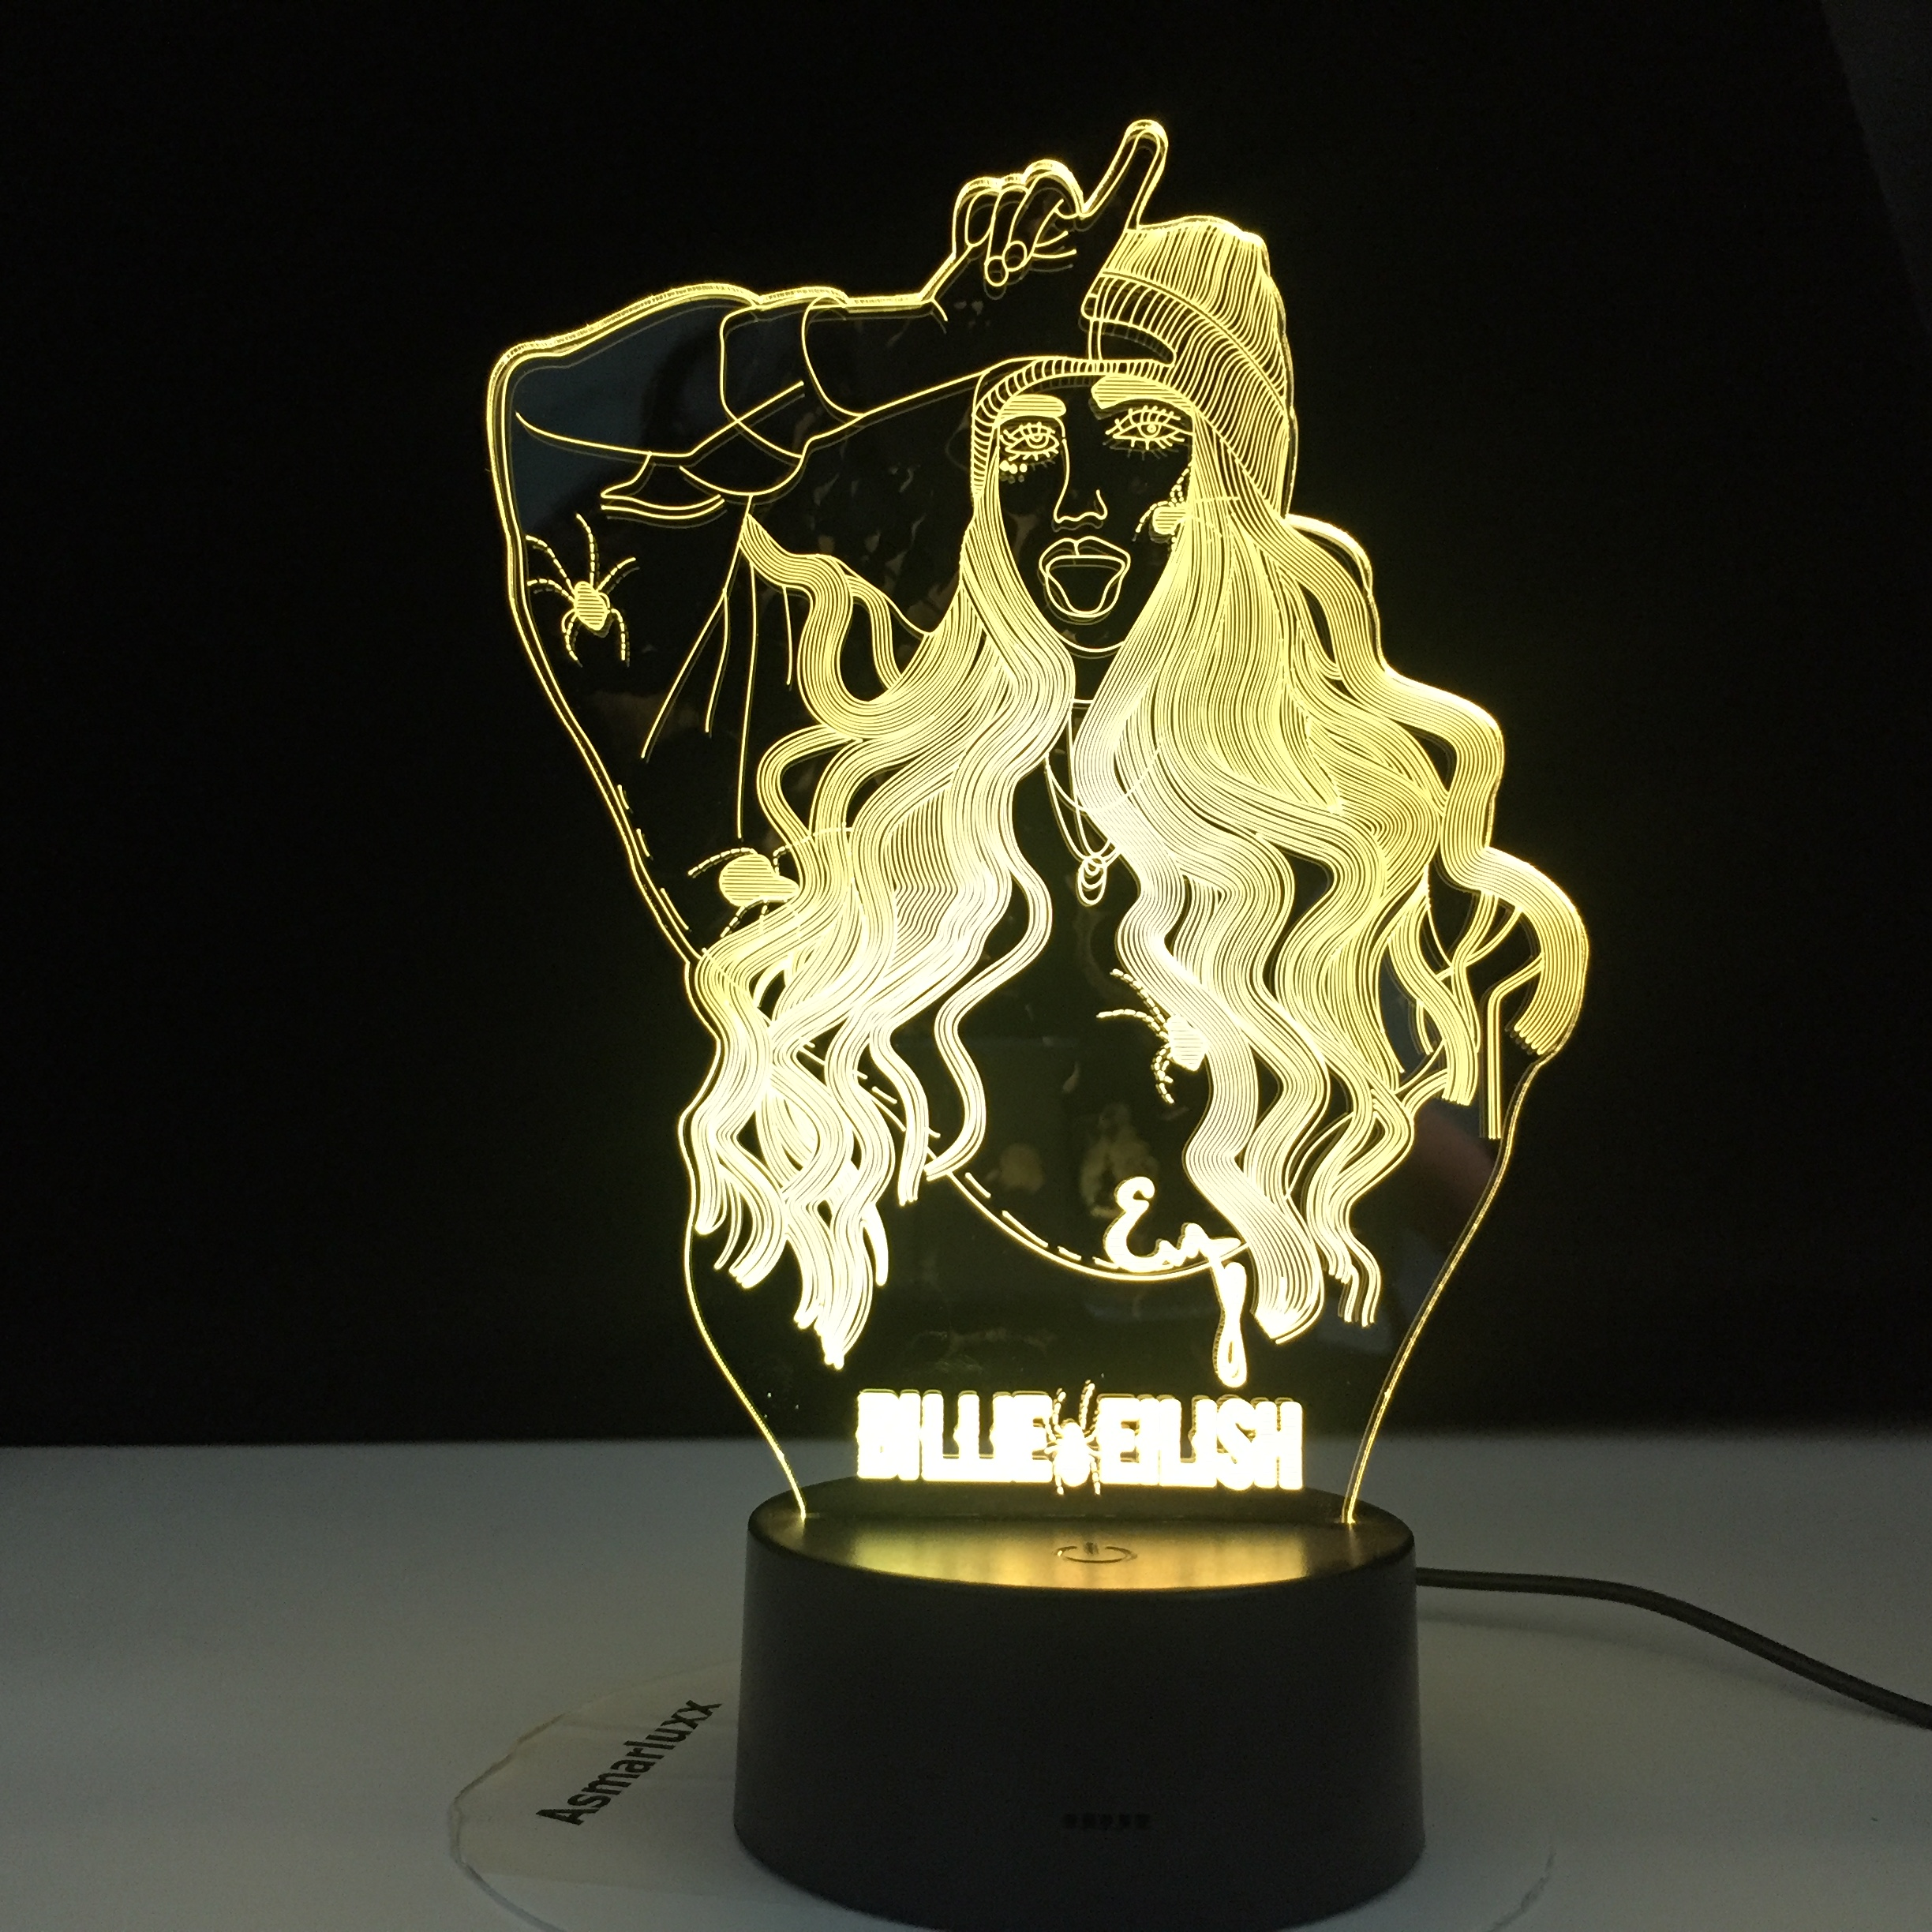 Billie Eilish Popular Singer 3D LED Lamp Illusion 7 Colors Changing Table Night Light Baby Bedside Decoration Lamp DropShipping